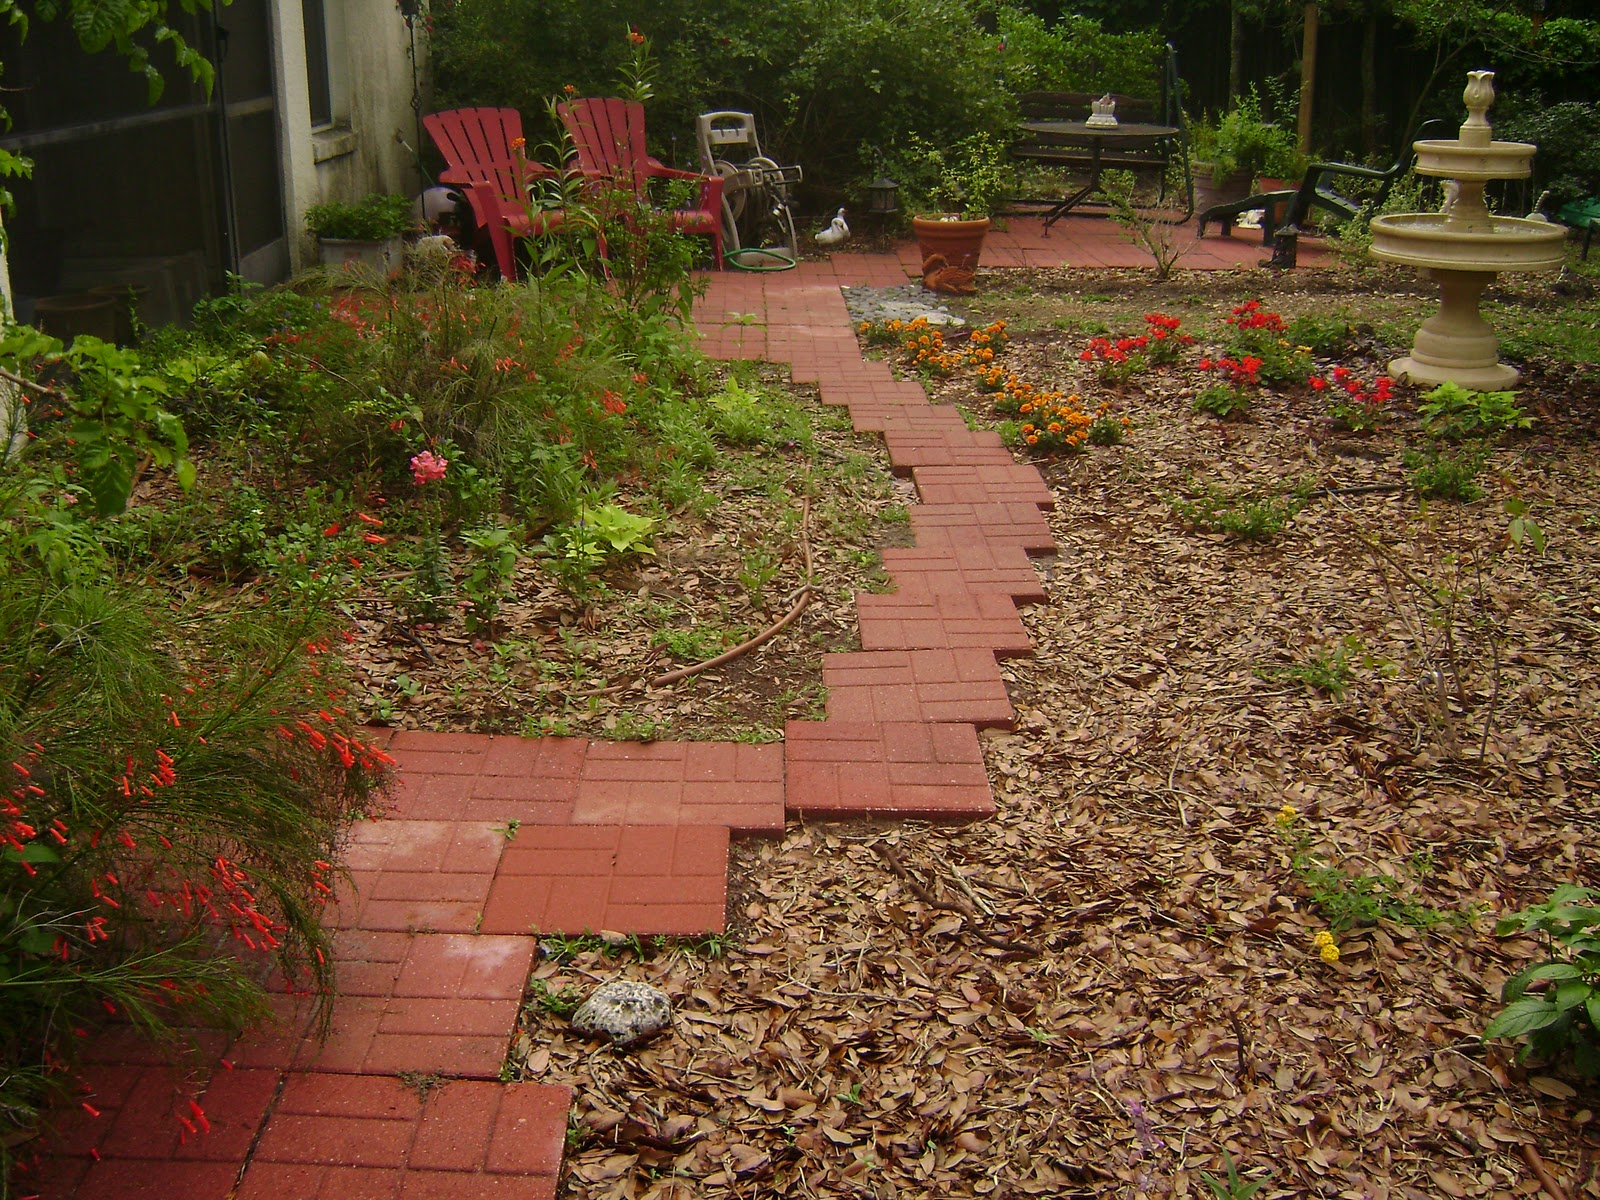 Serendipity In The Garden Paving The Way For A Friend